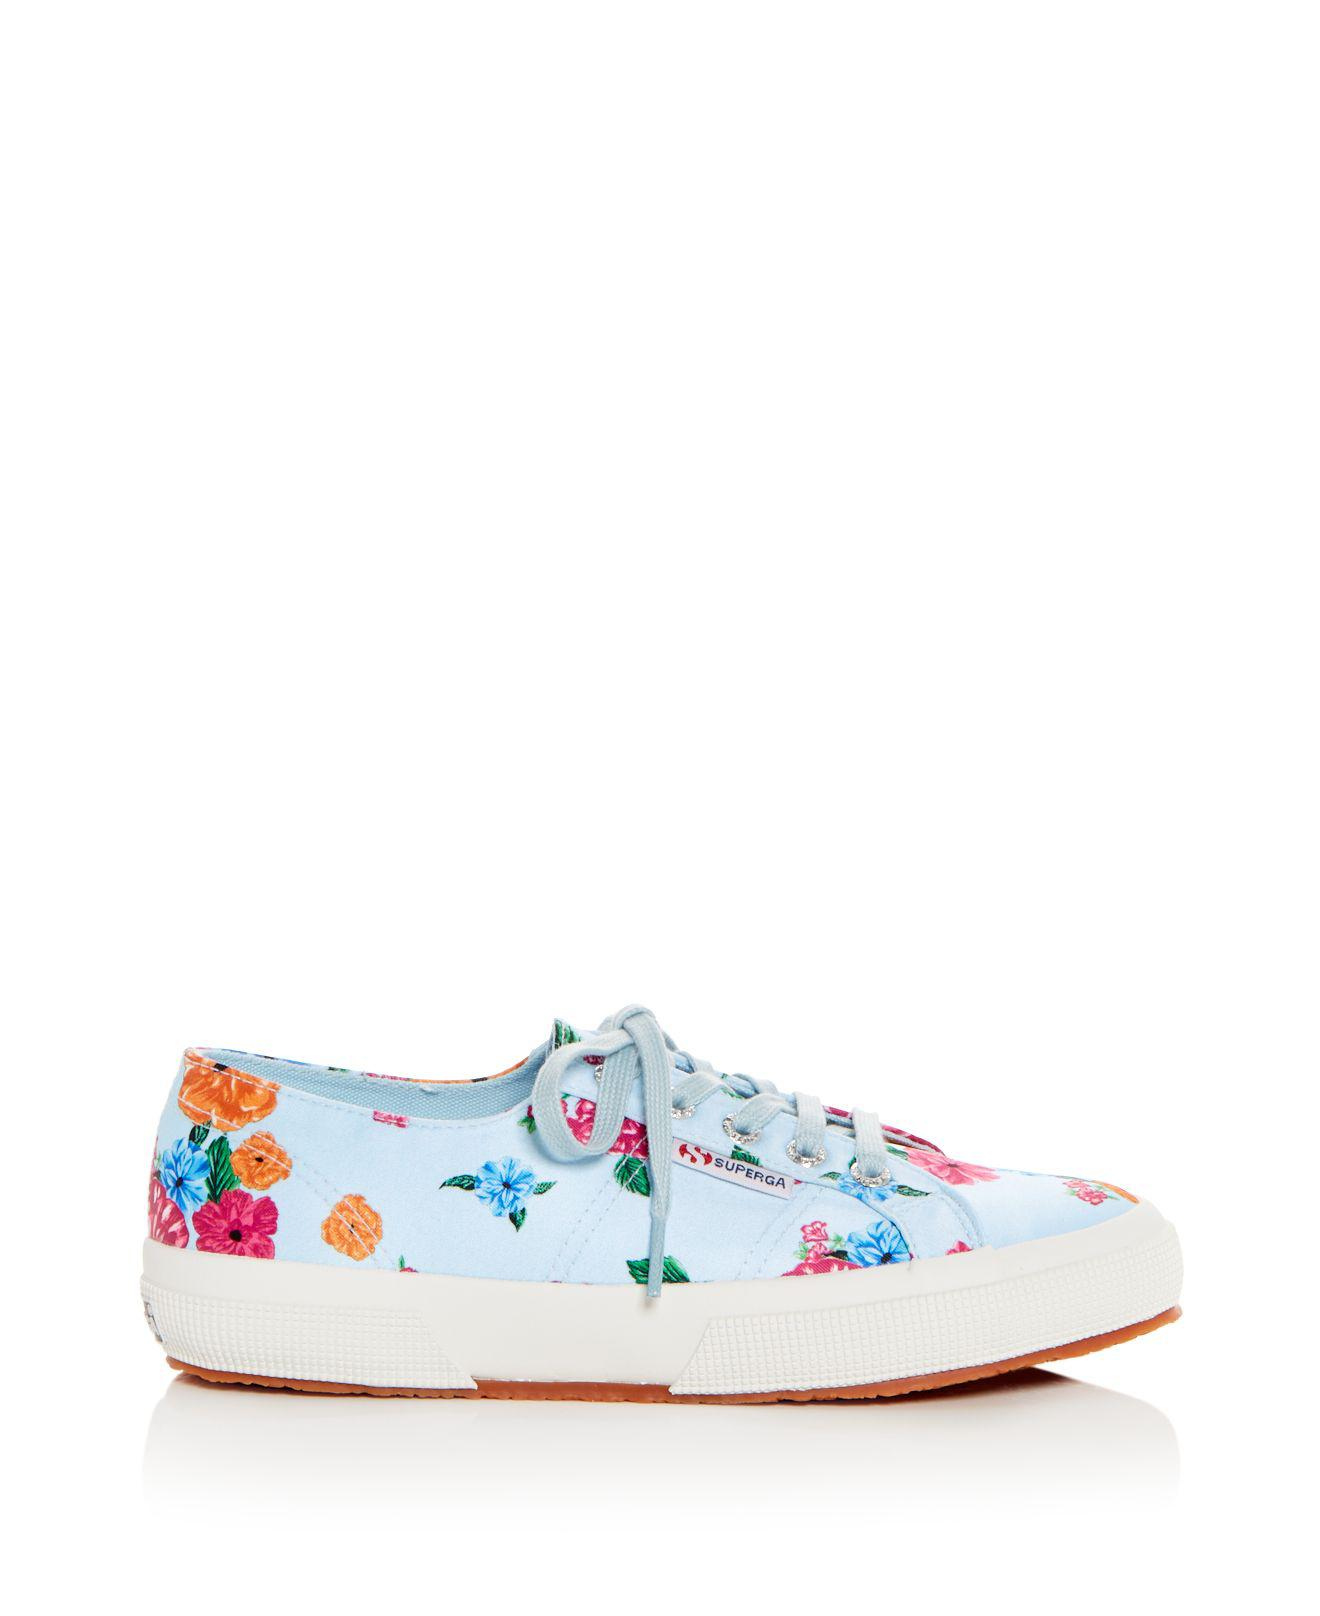 Superga Women's Classic Floral Satin Lace Up Sneakers wFz4rBfuYx